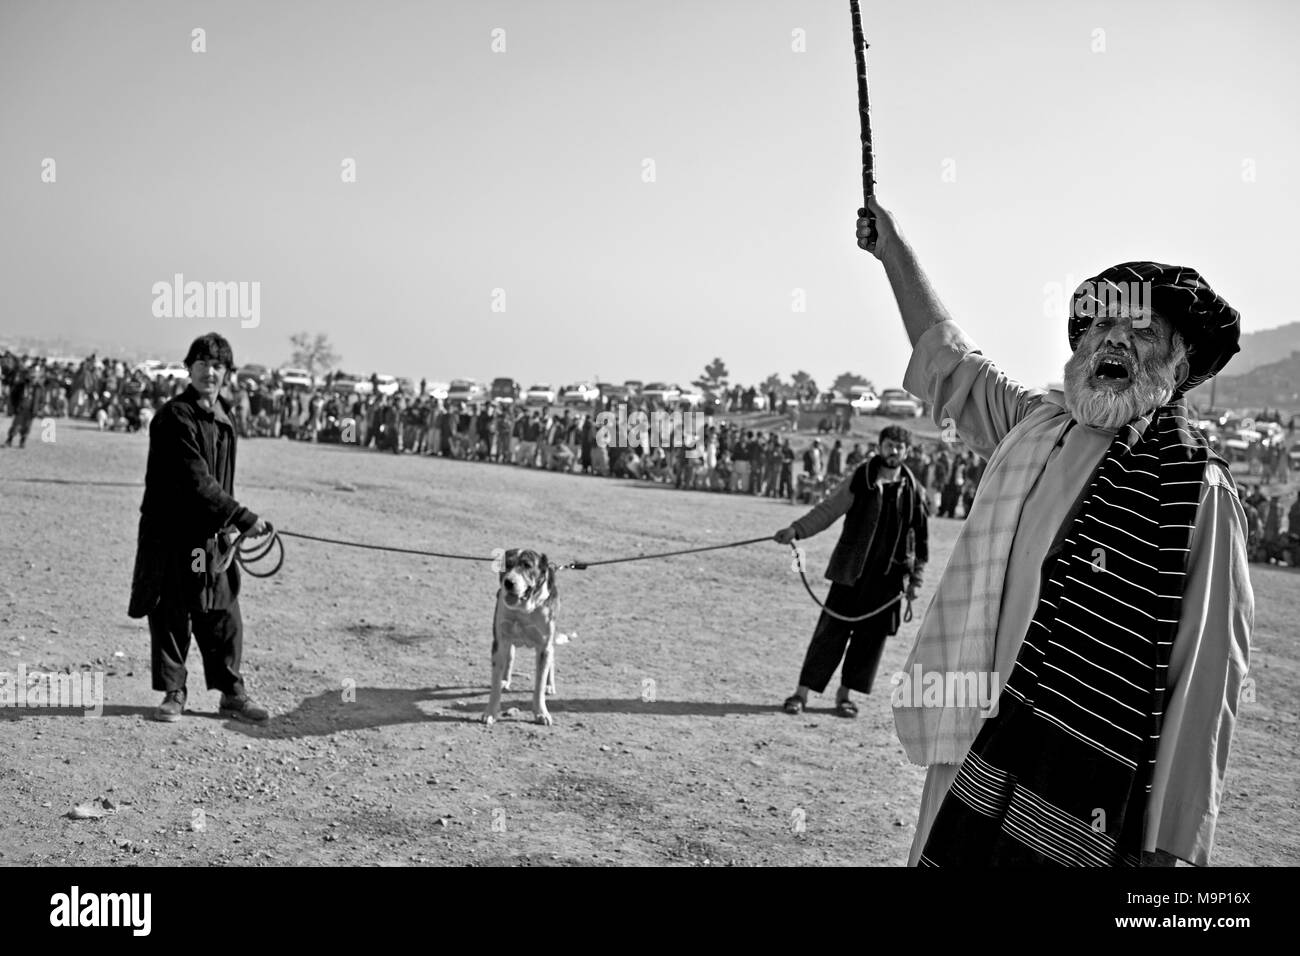 An announcer yells for the next contender during the weekly dog fights in Kabul, Afghanistan, Friday, November 20, 2009. Dog fighting was banned under the Taliban rule because it was considered a violation of Islamic law, but the popularity has returned to Afghanistan. - Stock Image